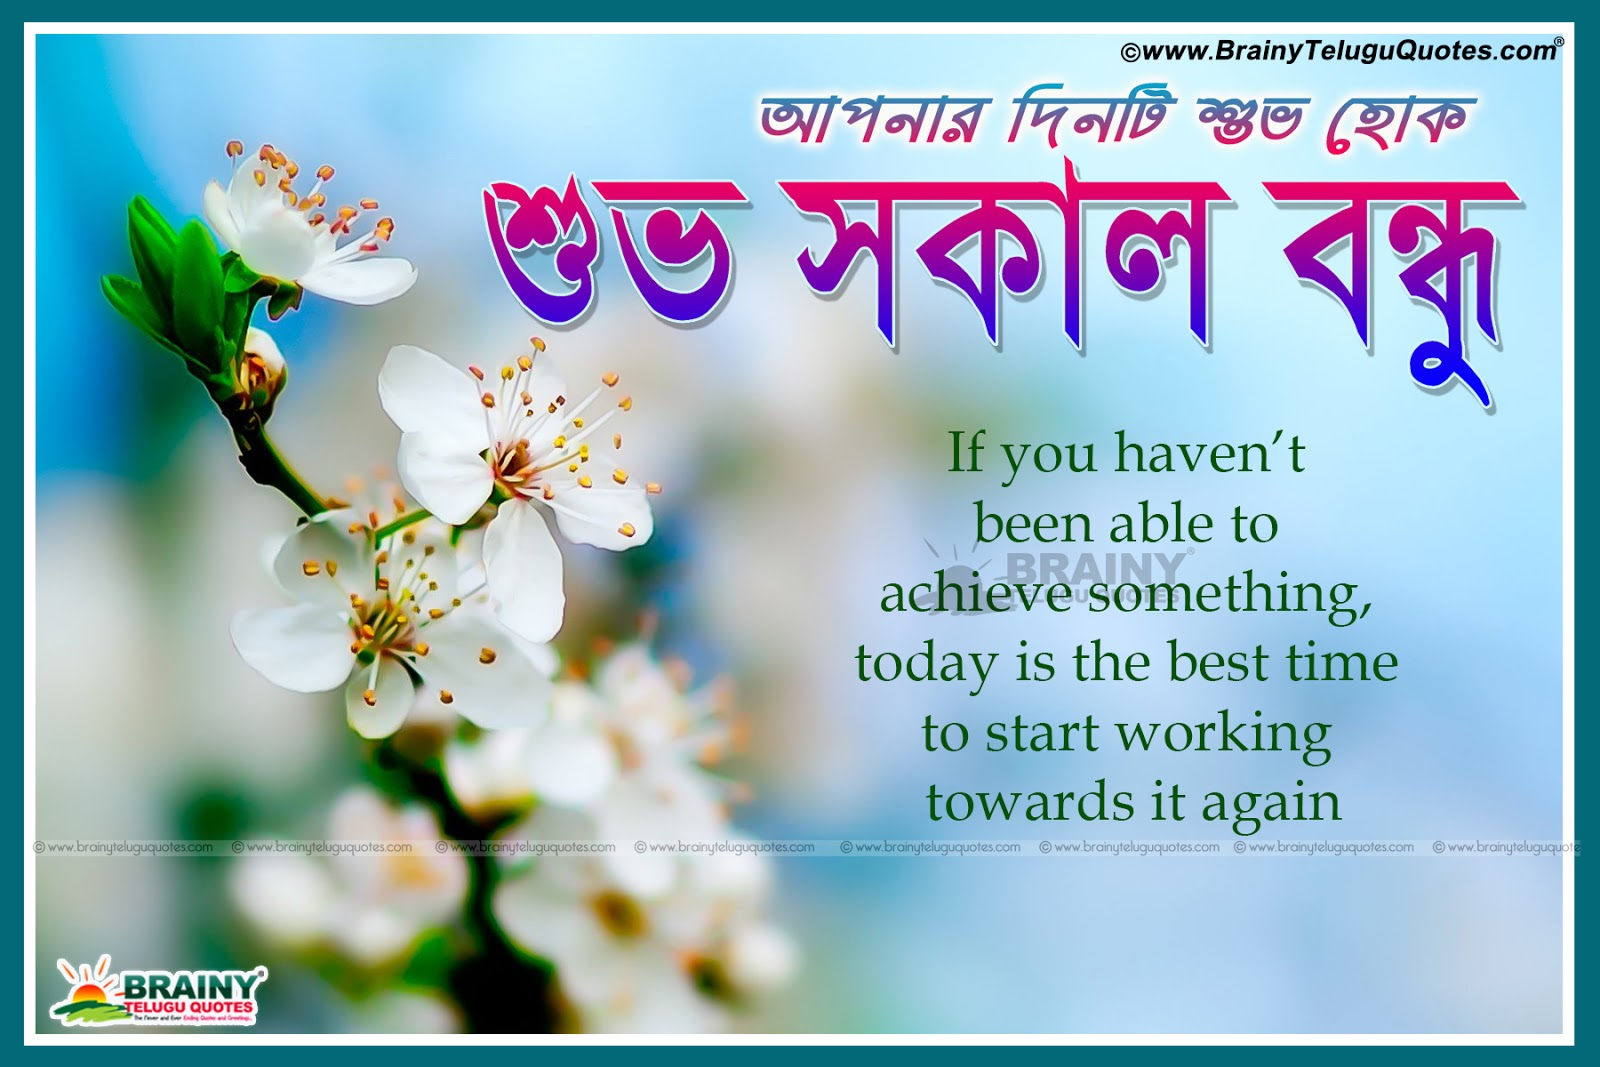 Good Morning bengali Quotations wishes and Messages